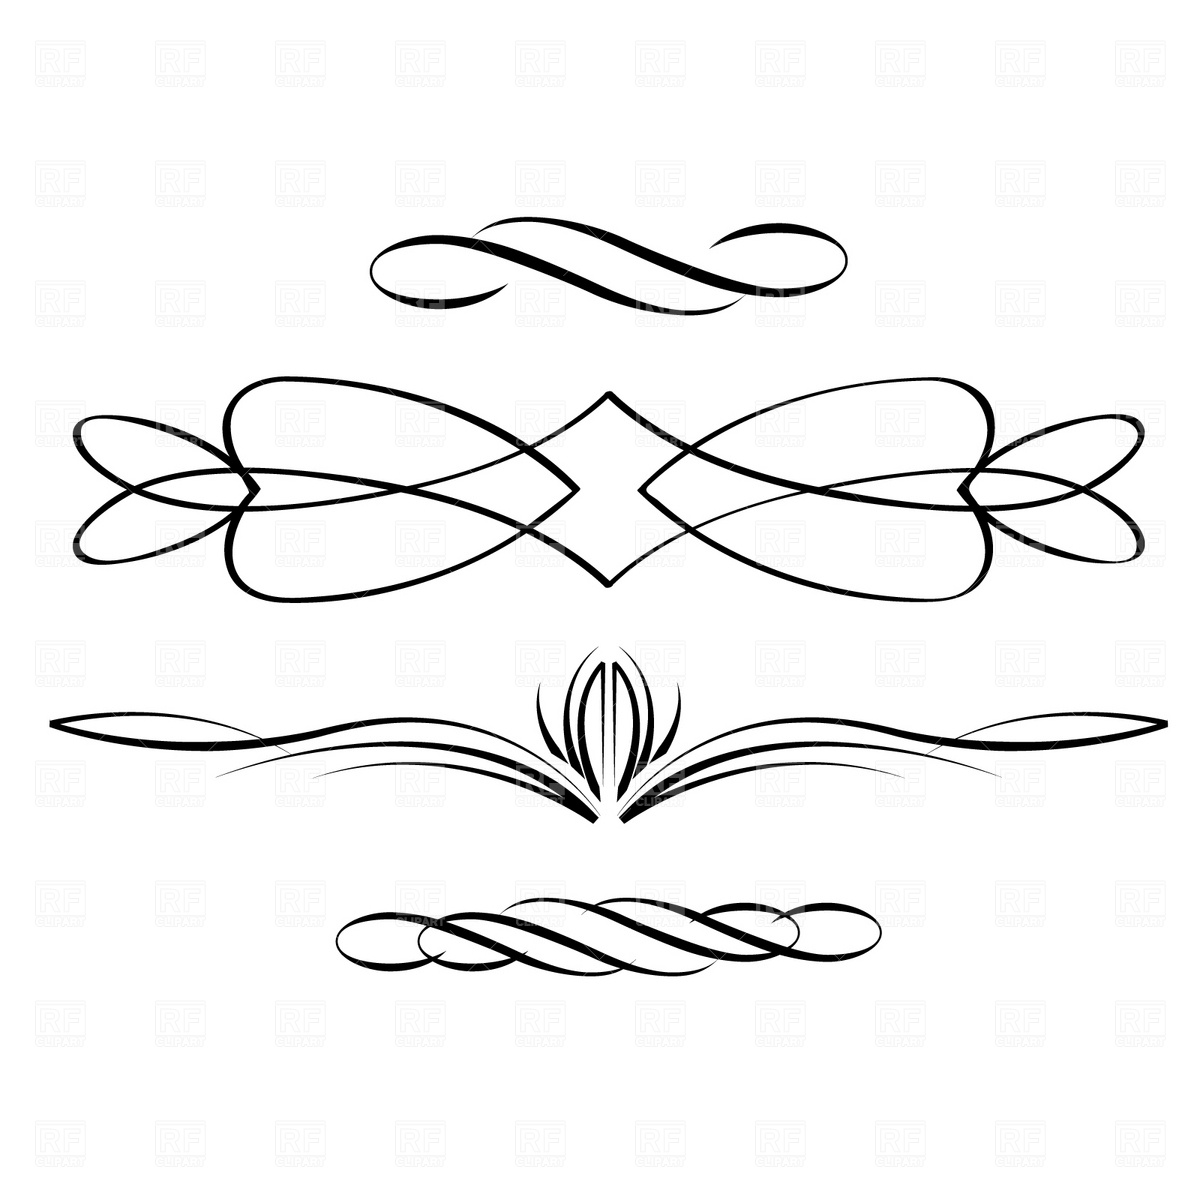 Free Scroll Border Cliparts, Download Free Clip Art, Free.